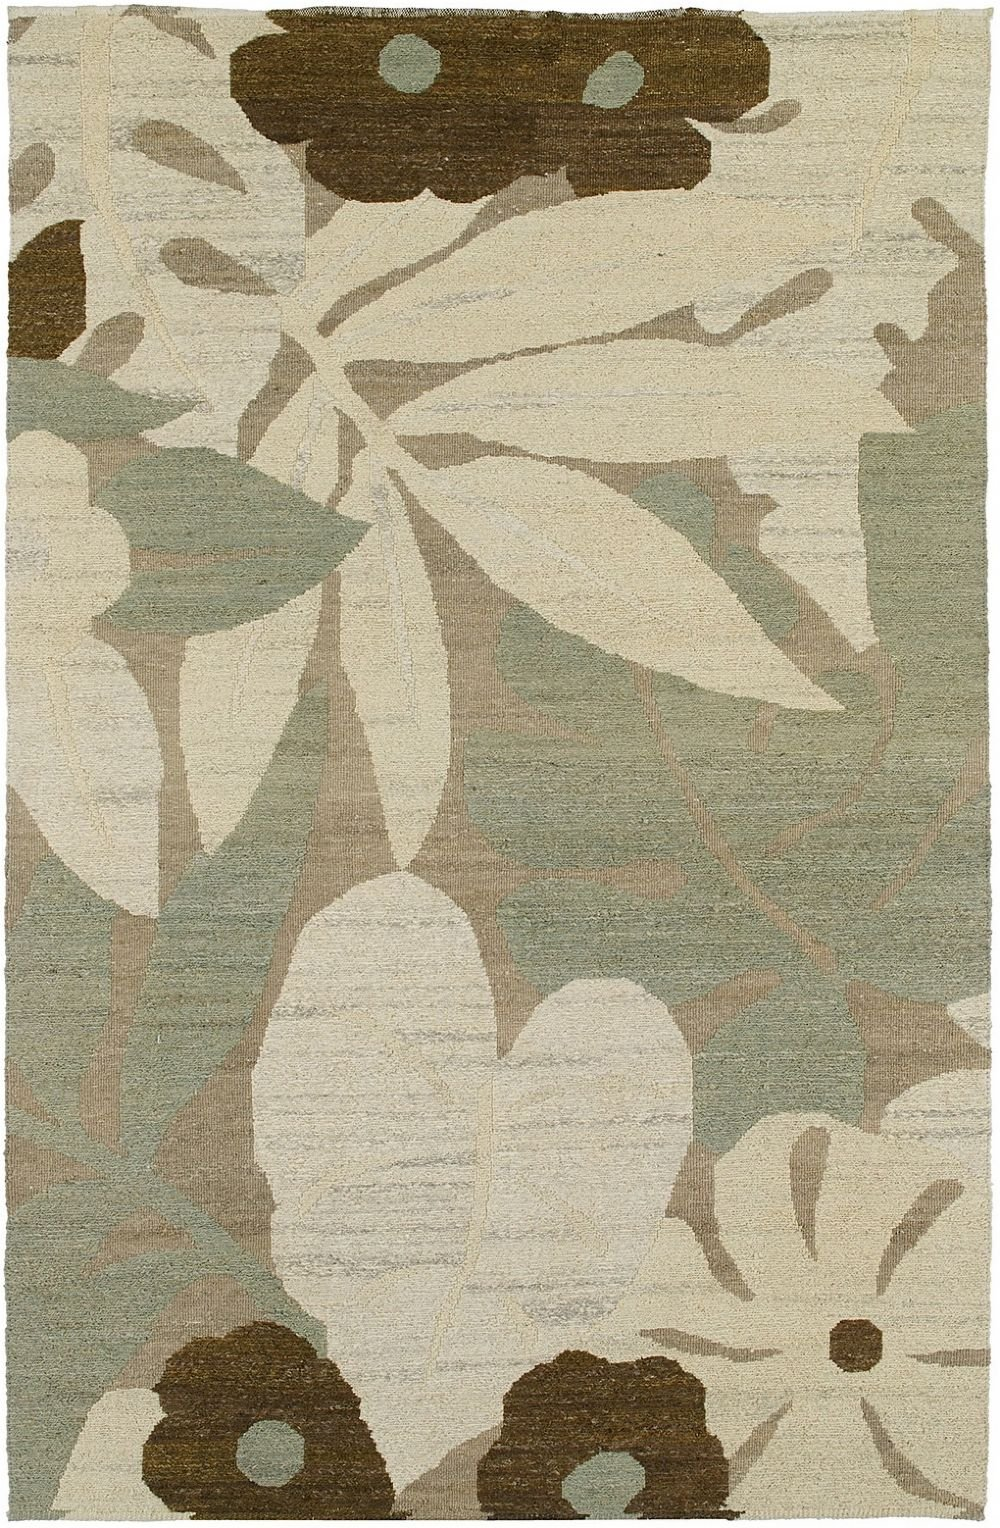 Kaleen Contemporary Rectangle Area Rug 5'x7'9'' in Spa Color From Mallard Creek Collection